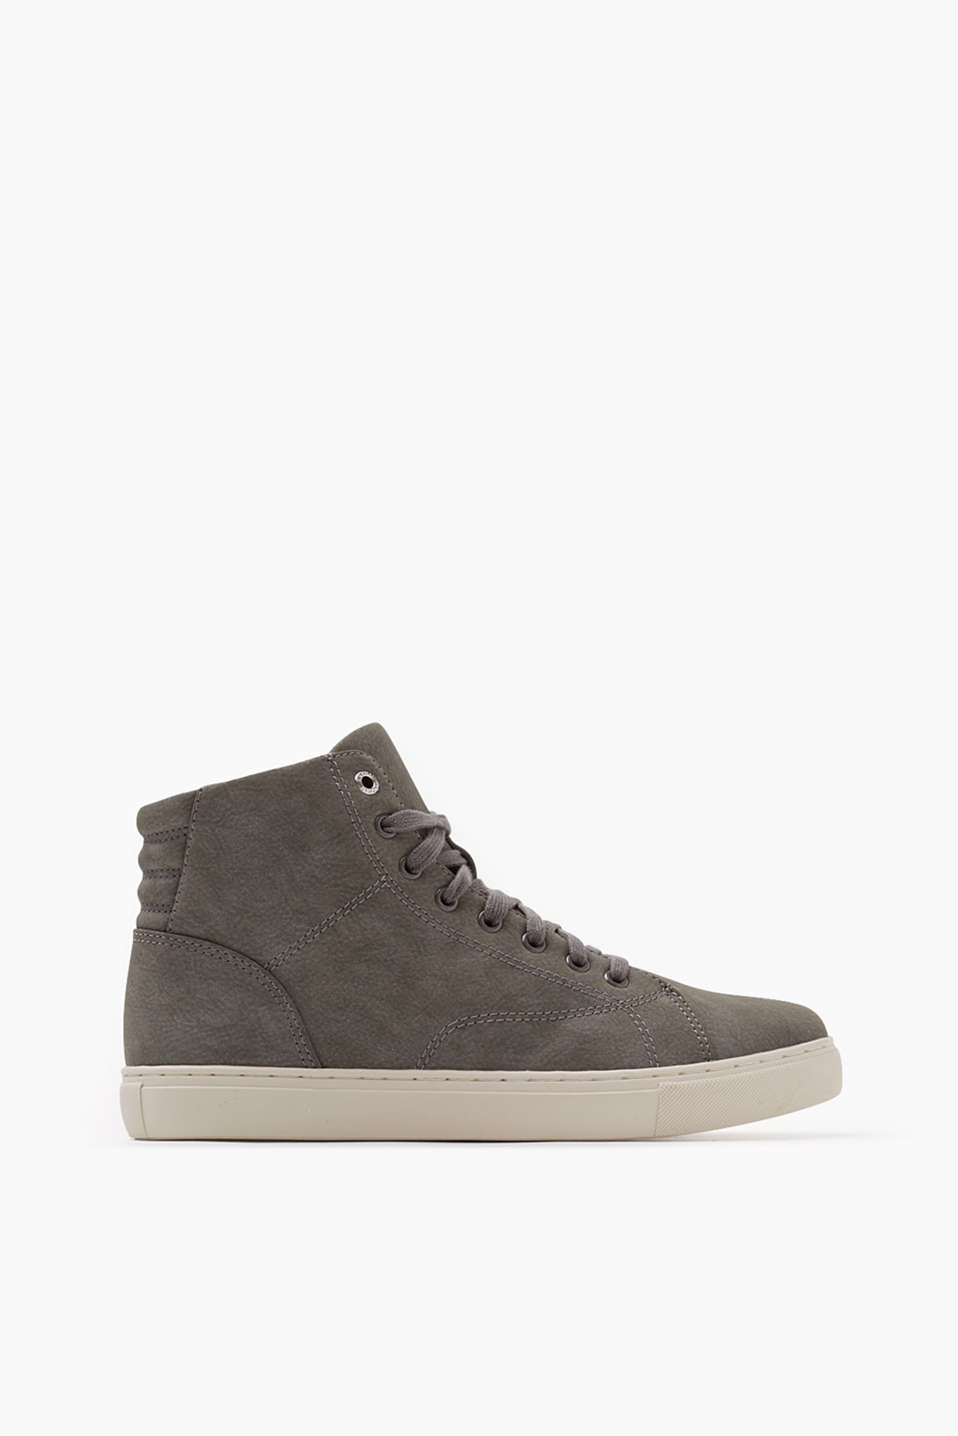 Trend style in a high top design with a zip